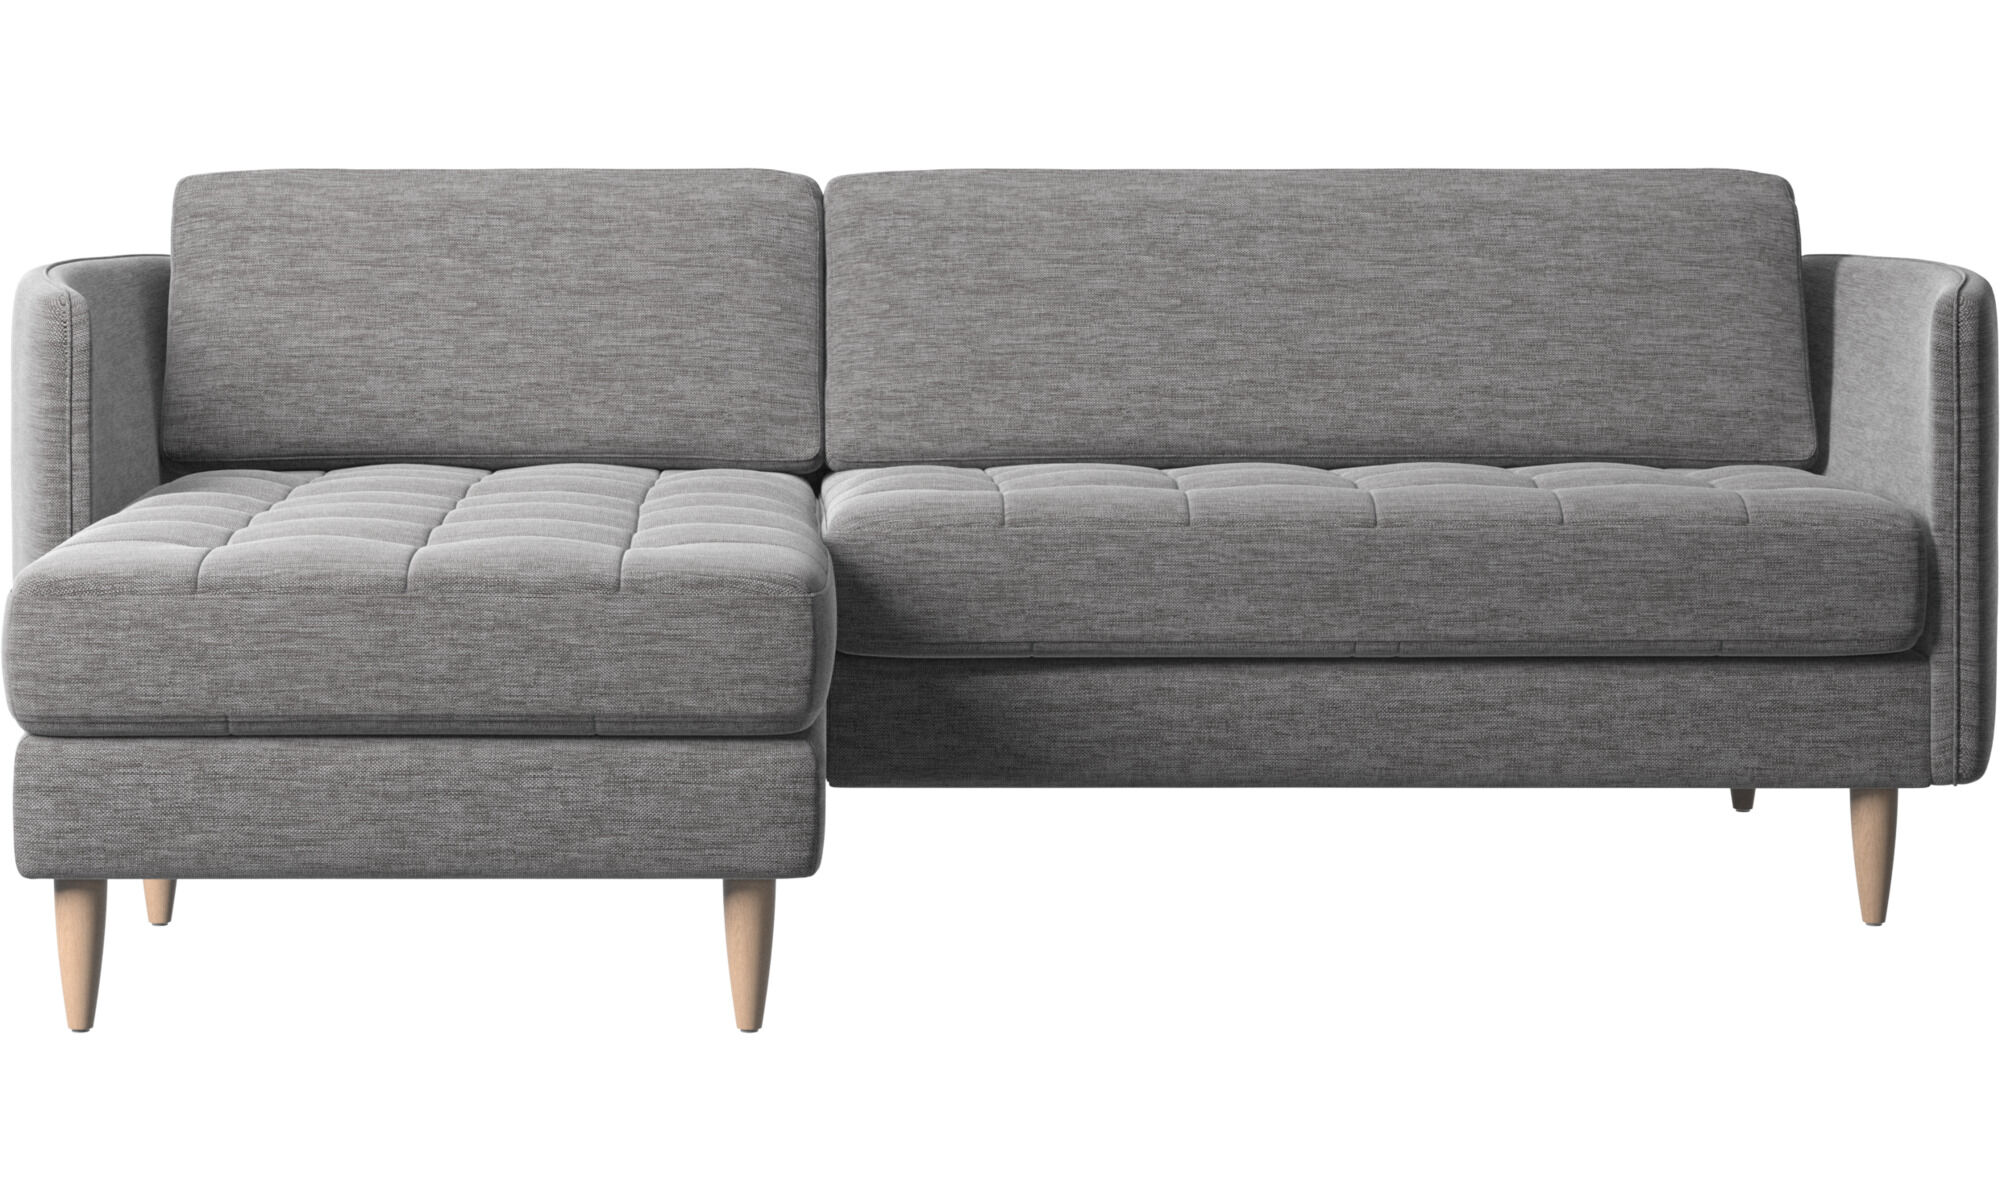 Attractive Chaise Lounge Sofas   Osaka Sofa With Resting Unit, Tufted Seat   Grey    Fabric